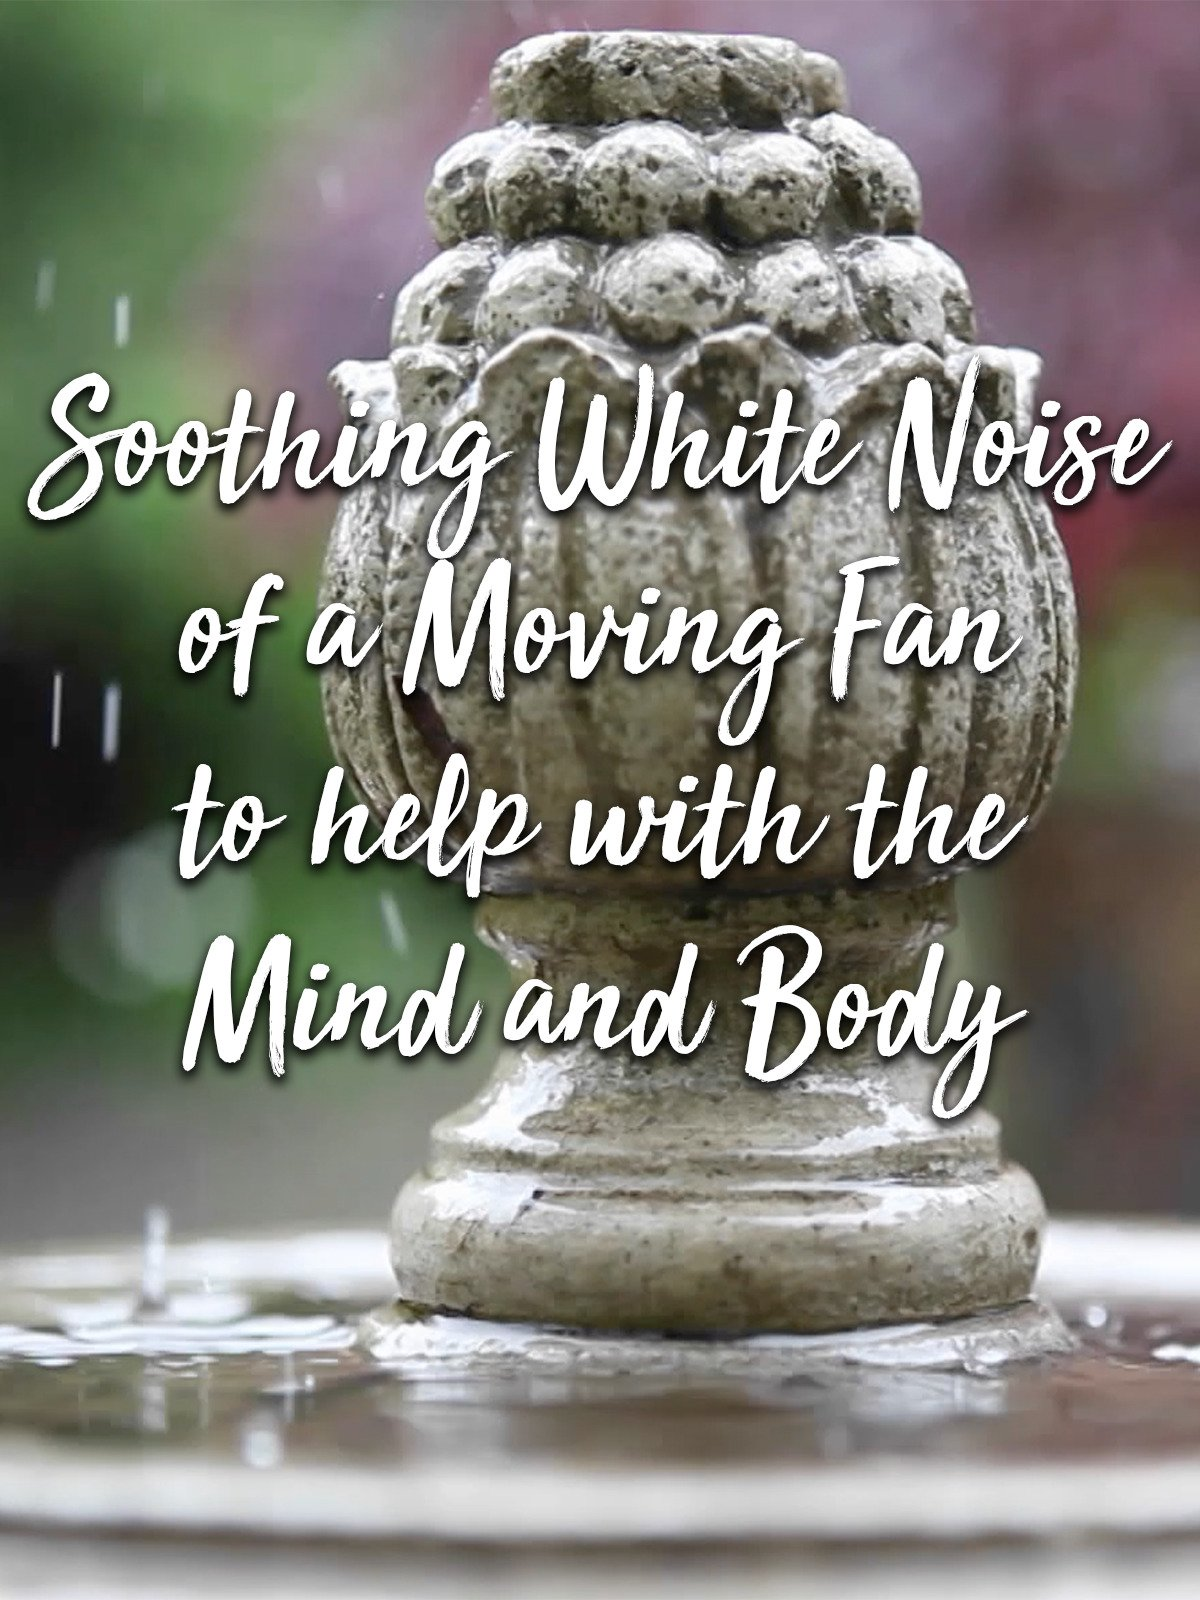 Soothing White Noise of a Moving Fan to help with the Mind and Body